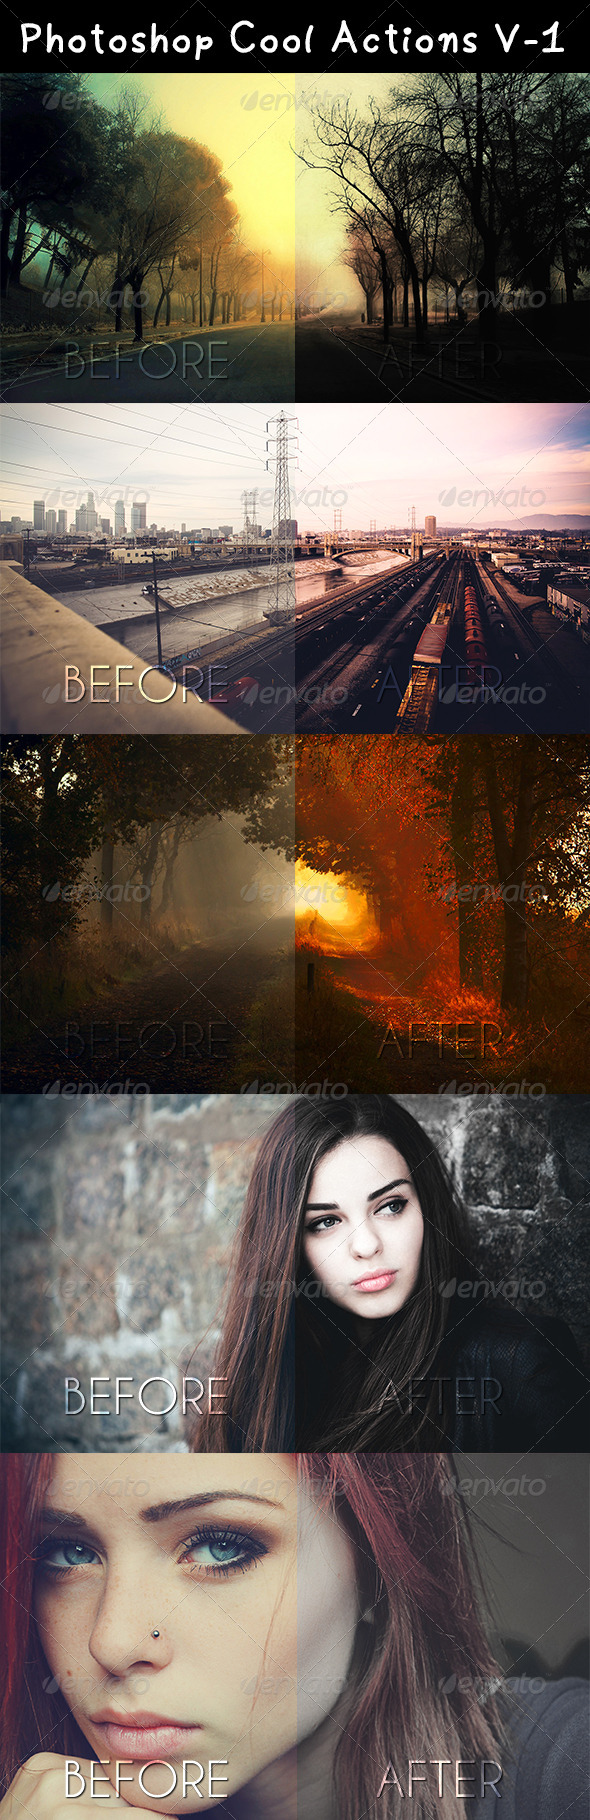 8 Great Actions for each photo - Actions Photoshop